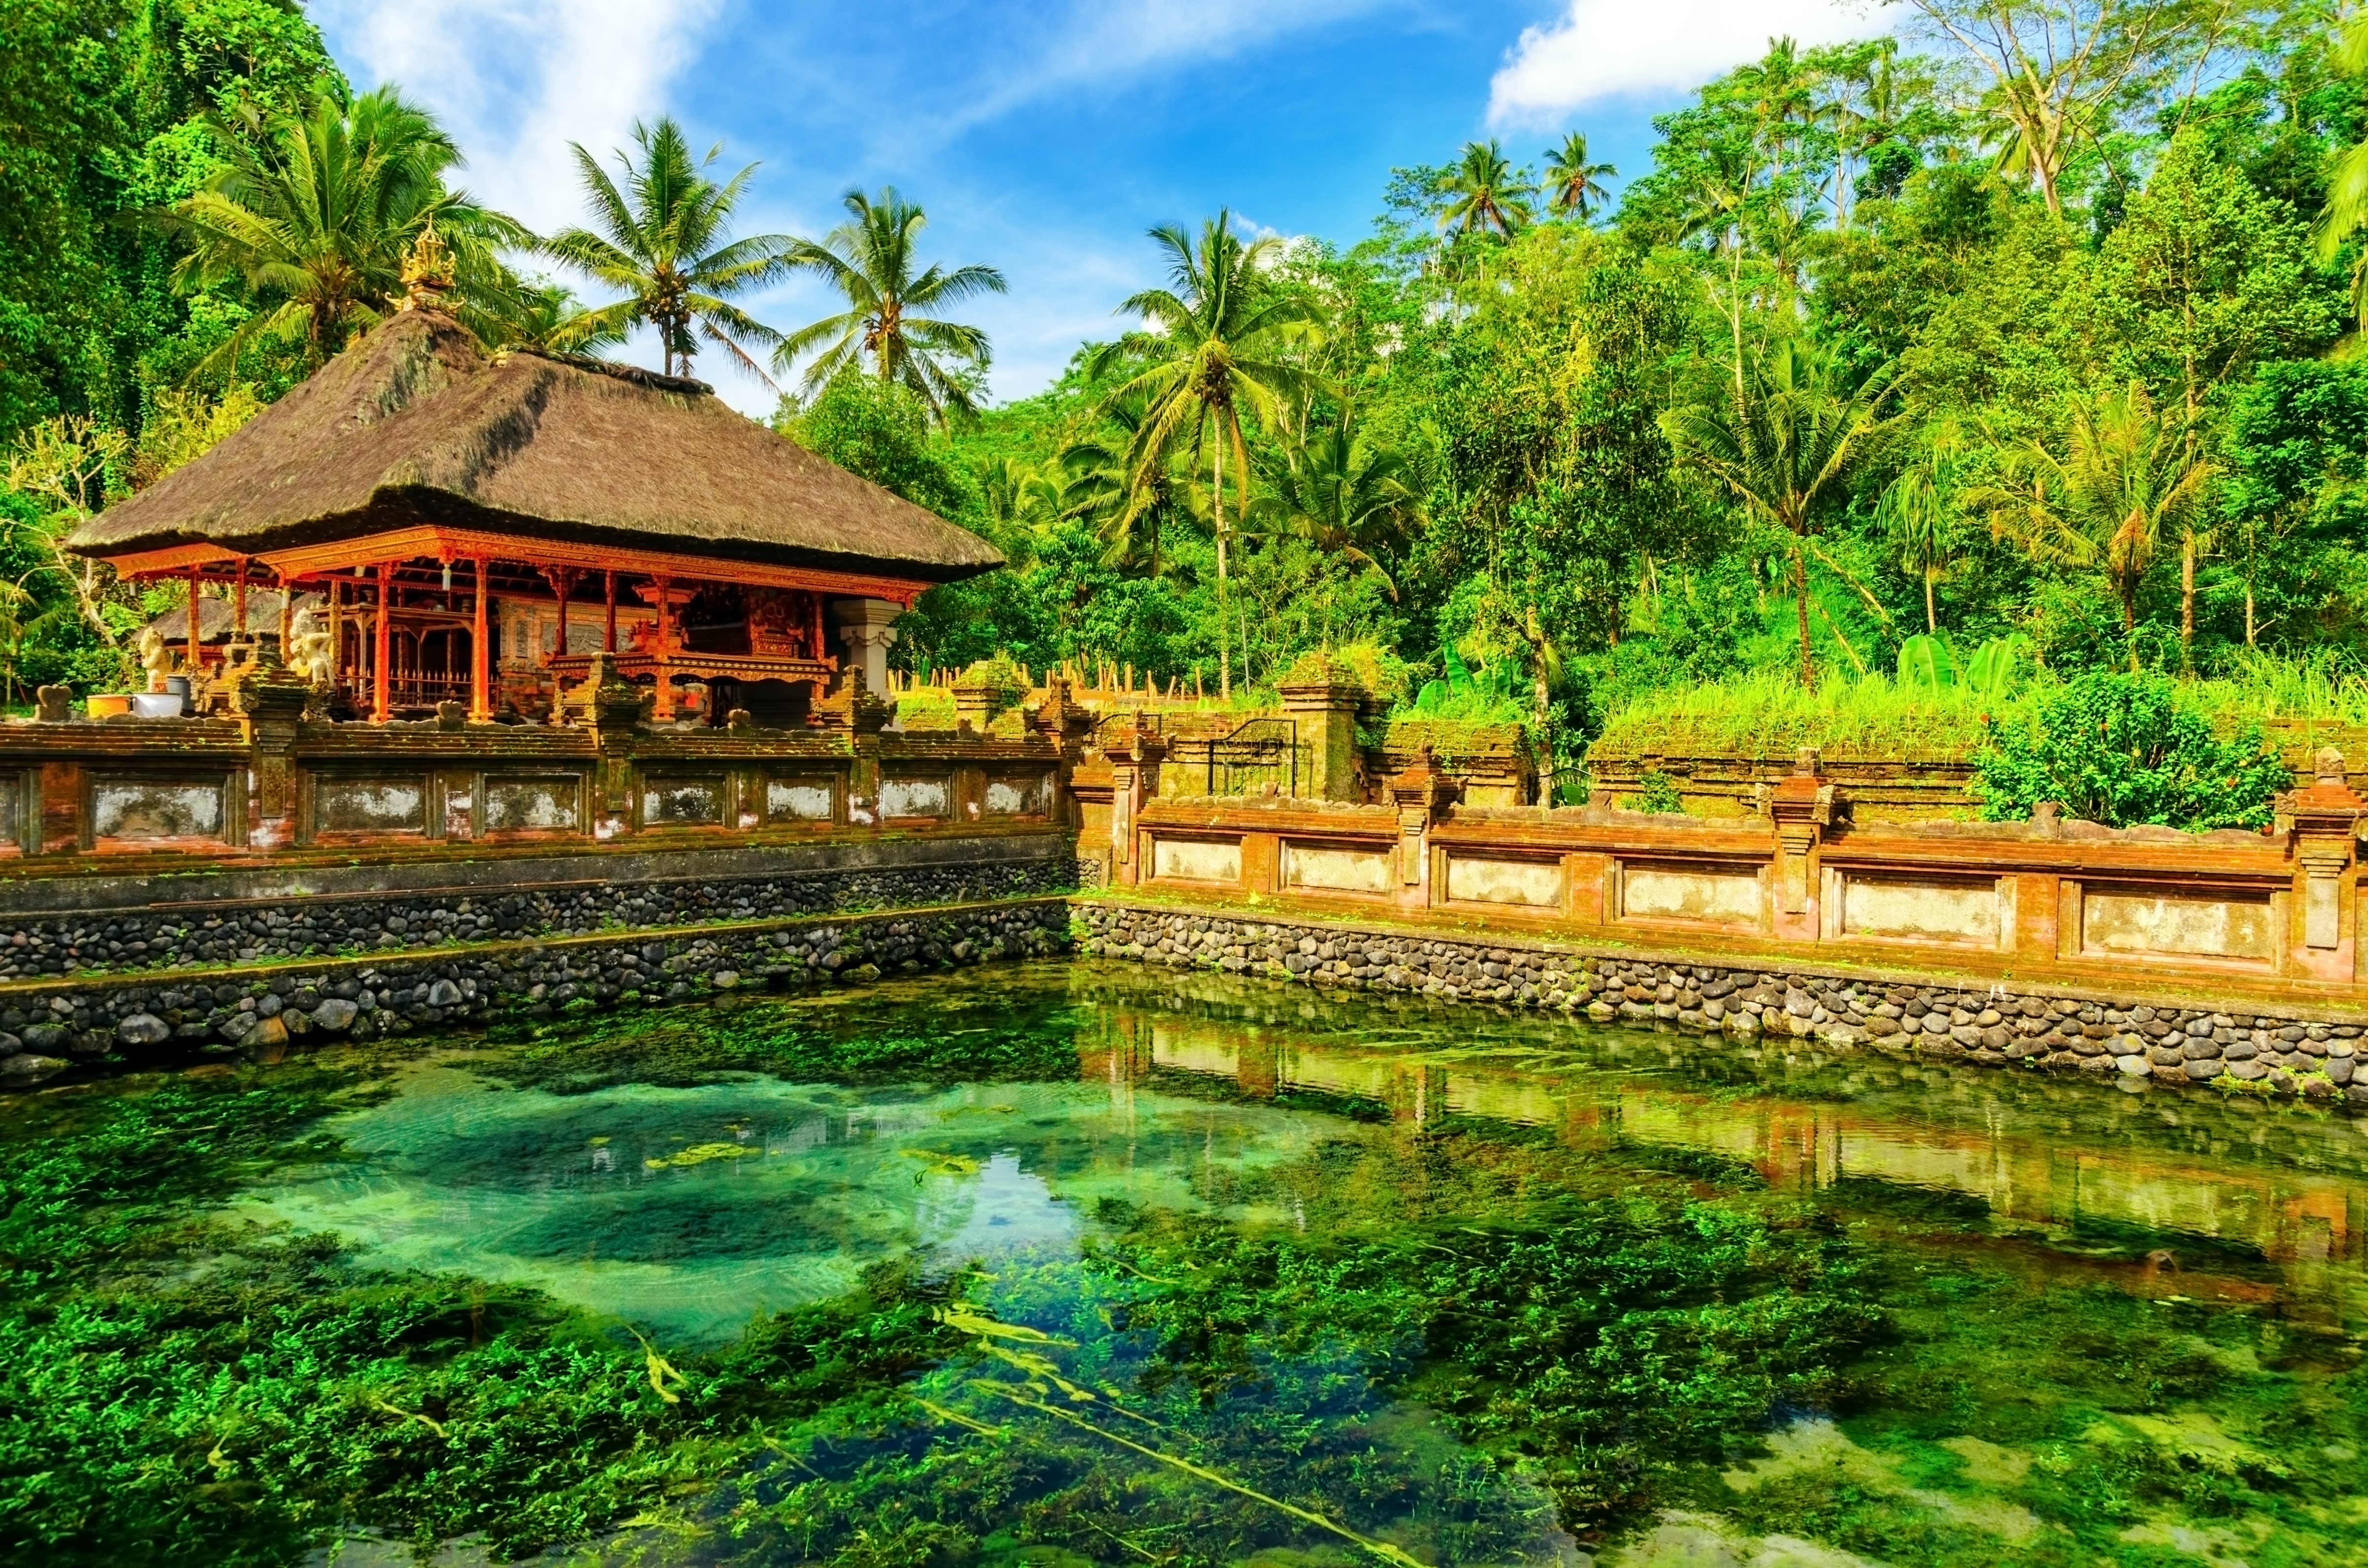 Fasinating history of Bali, Indonesia